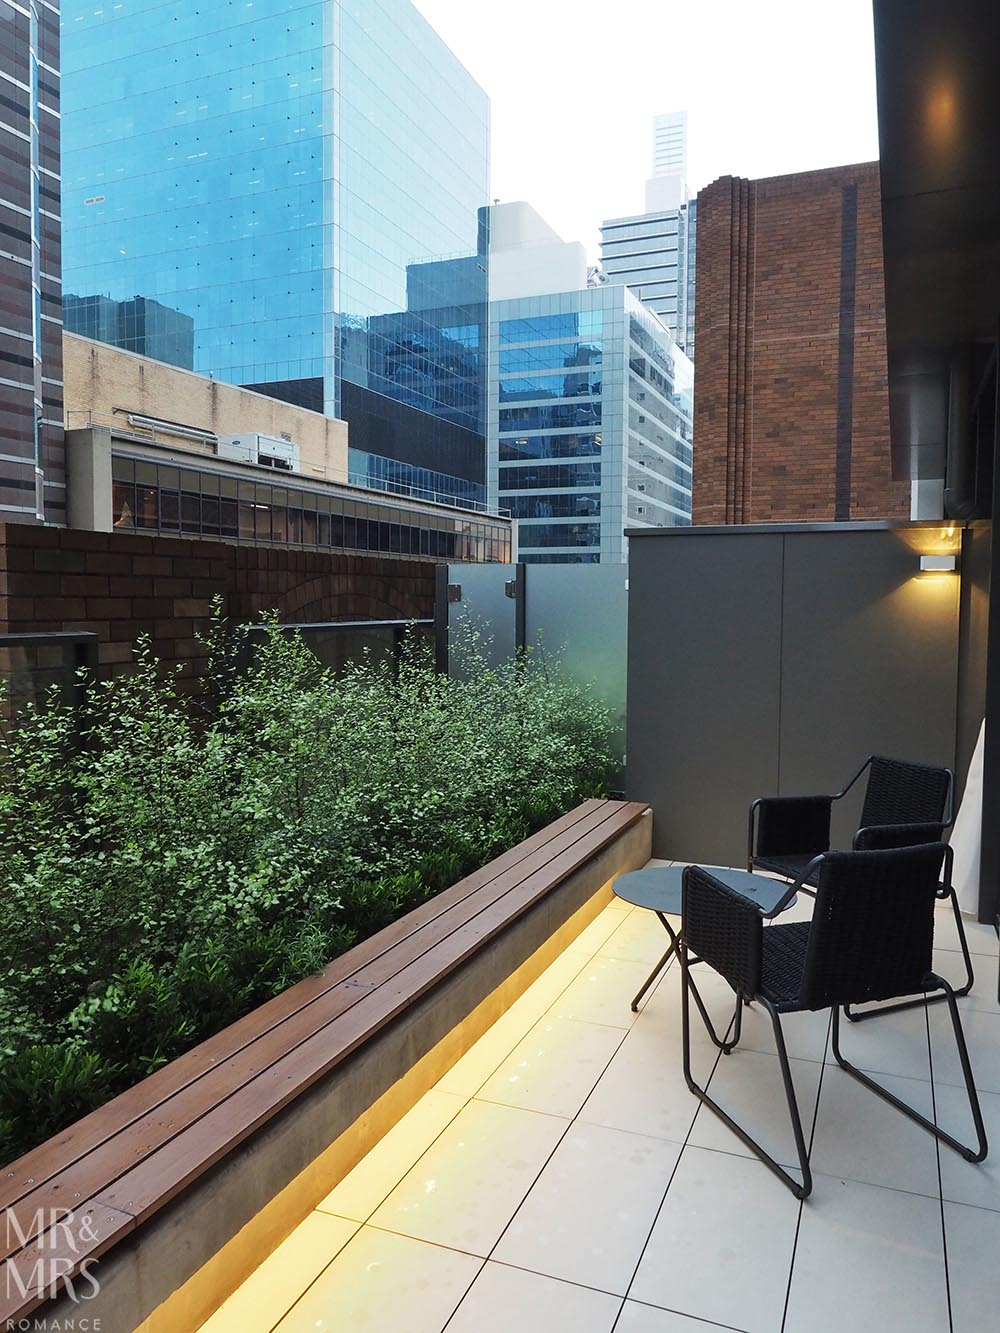 Romantic Sydney hotels - Hotels.com x Mr & Mrs Romance - Skye Suites Sydney balcony